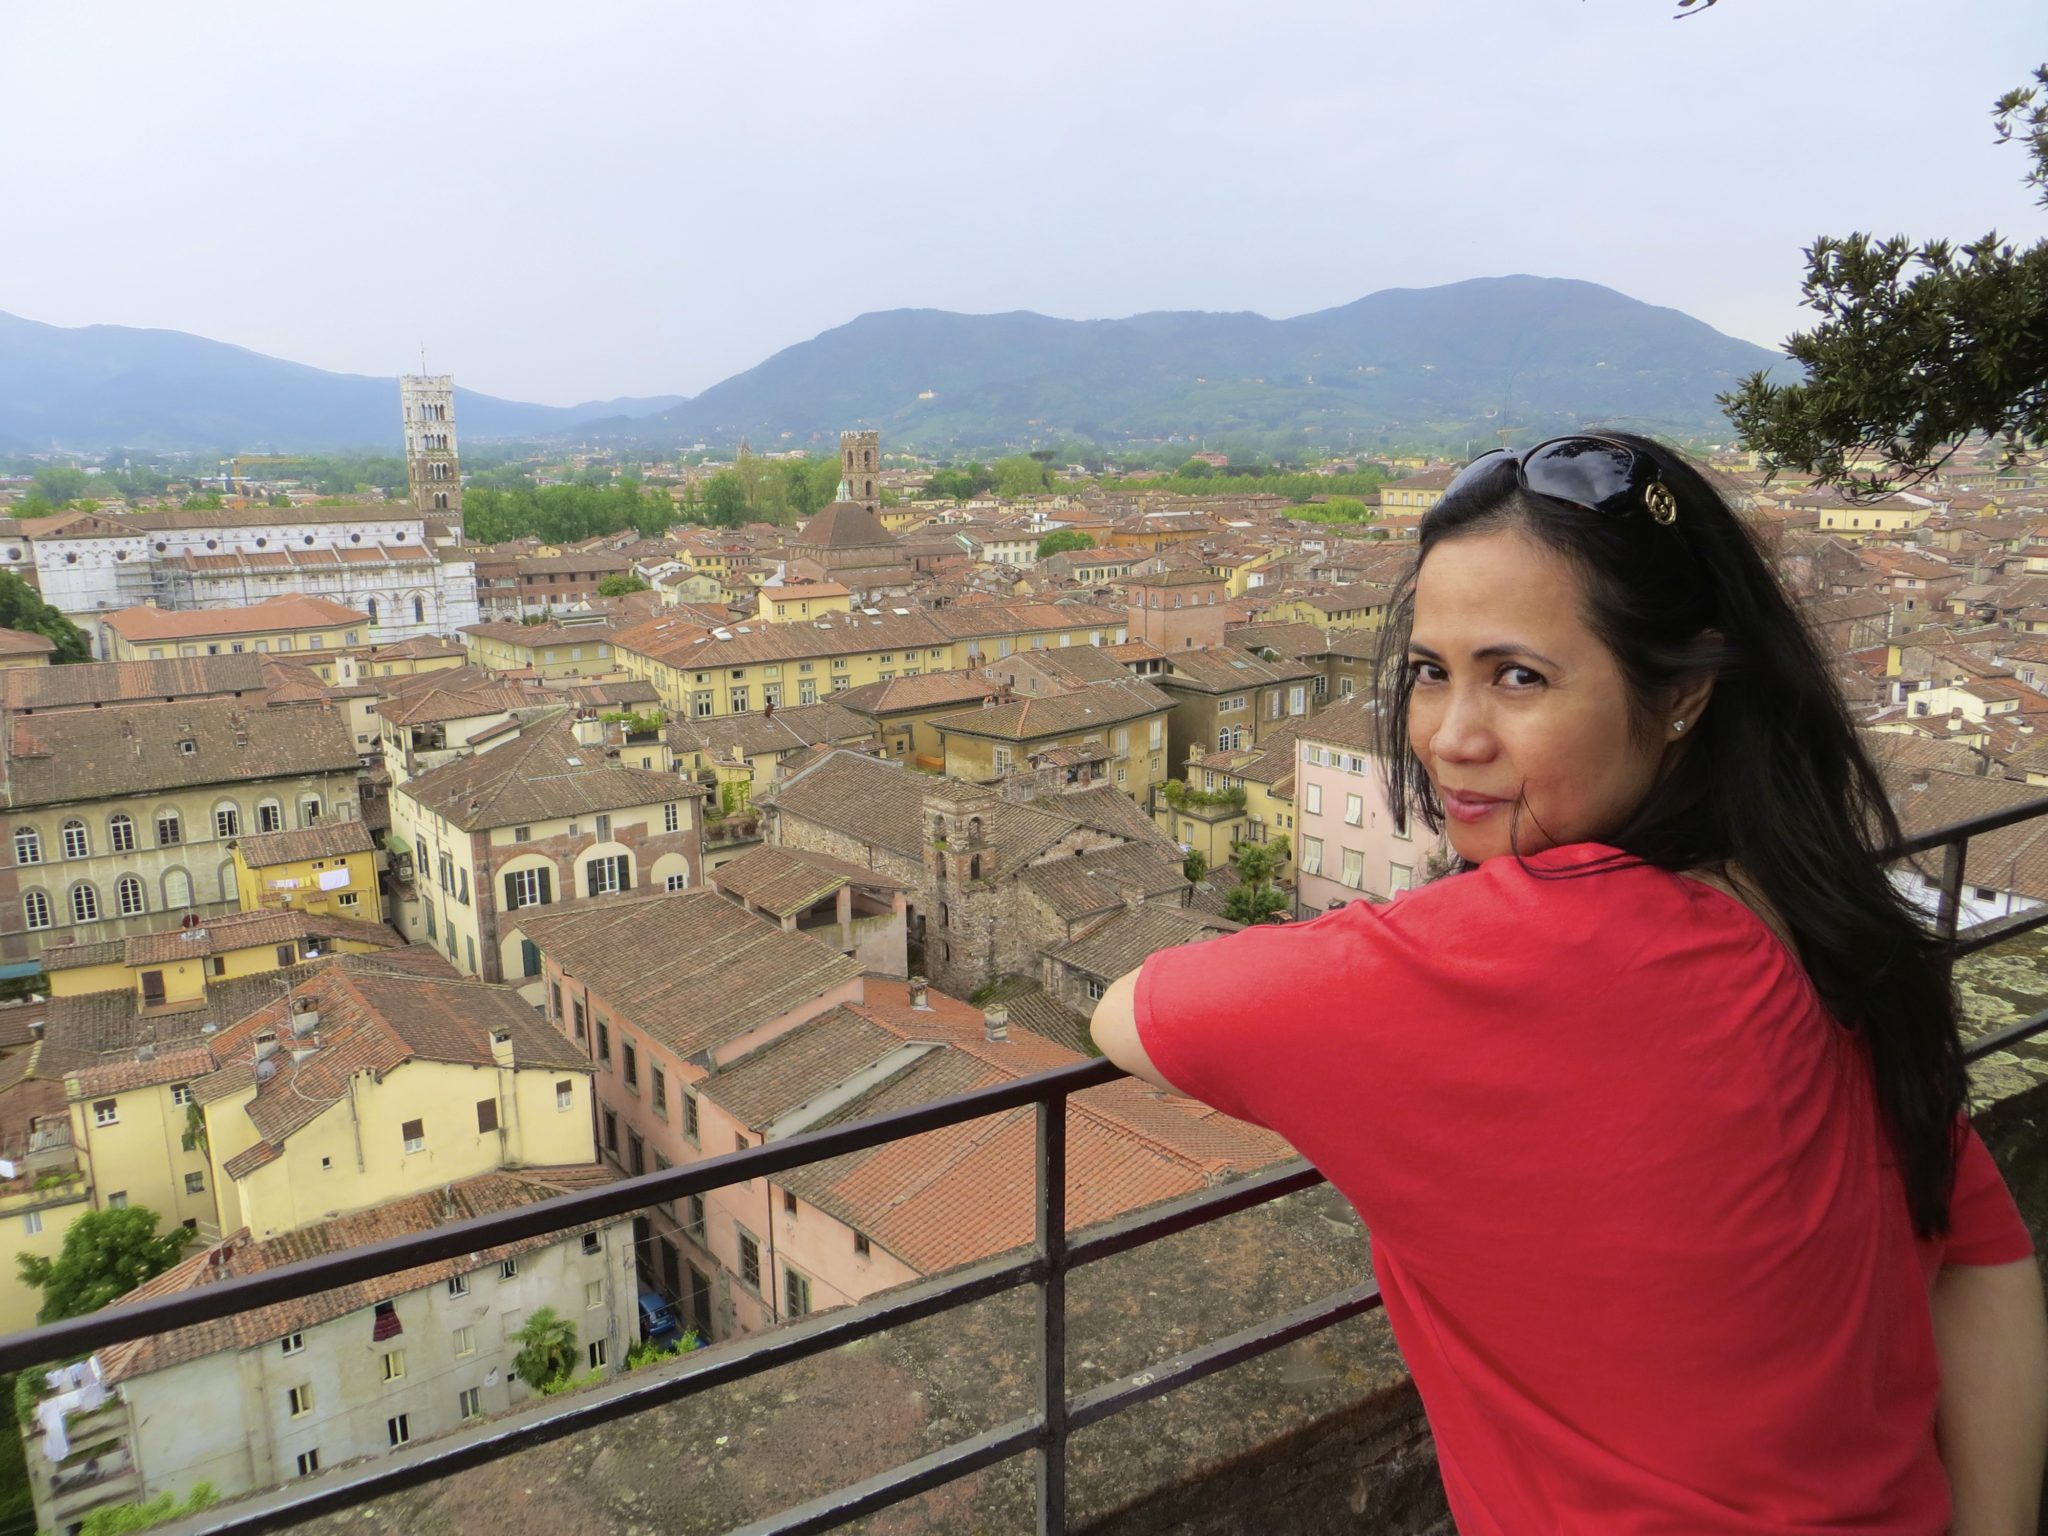 Lucca – A Walled City in Tuscany